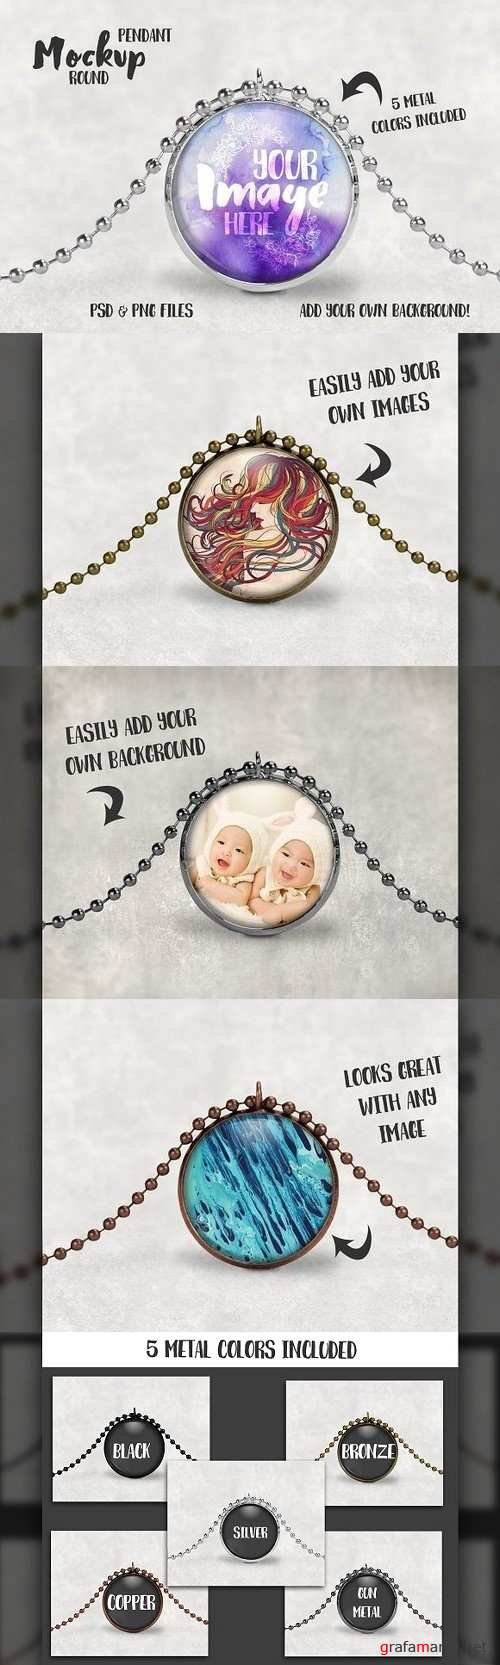 Round pendant with ball chain mockup 1243592